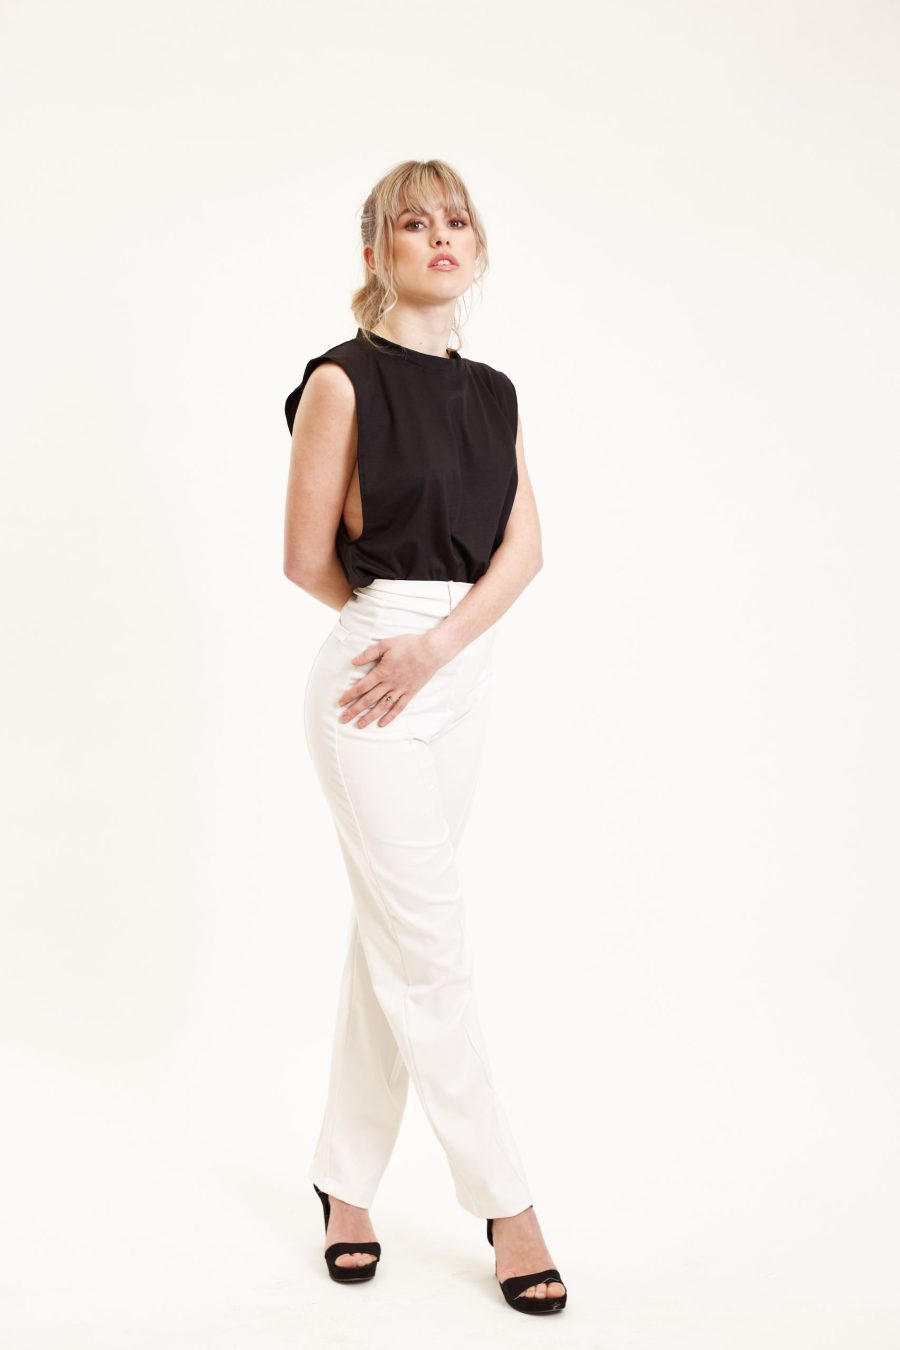 Dawn pants outfit bright white side